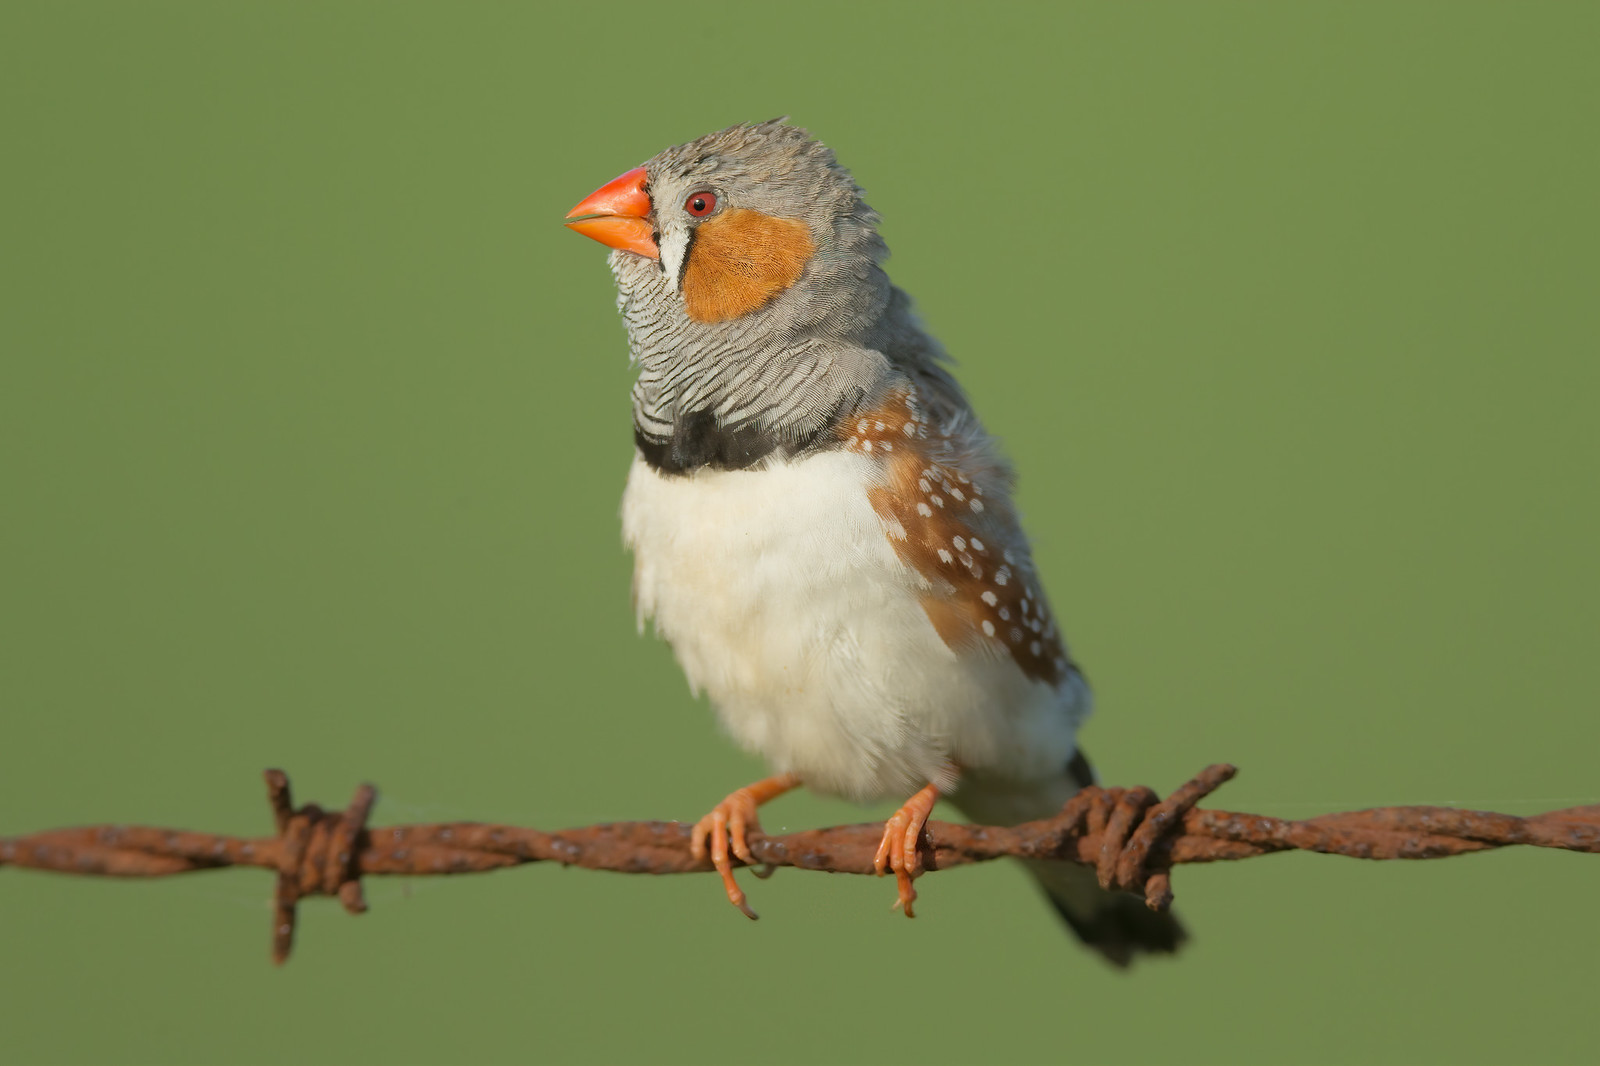 File:Zebra-finch-0008.jpg